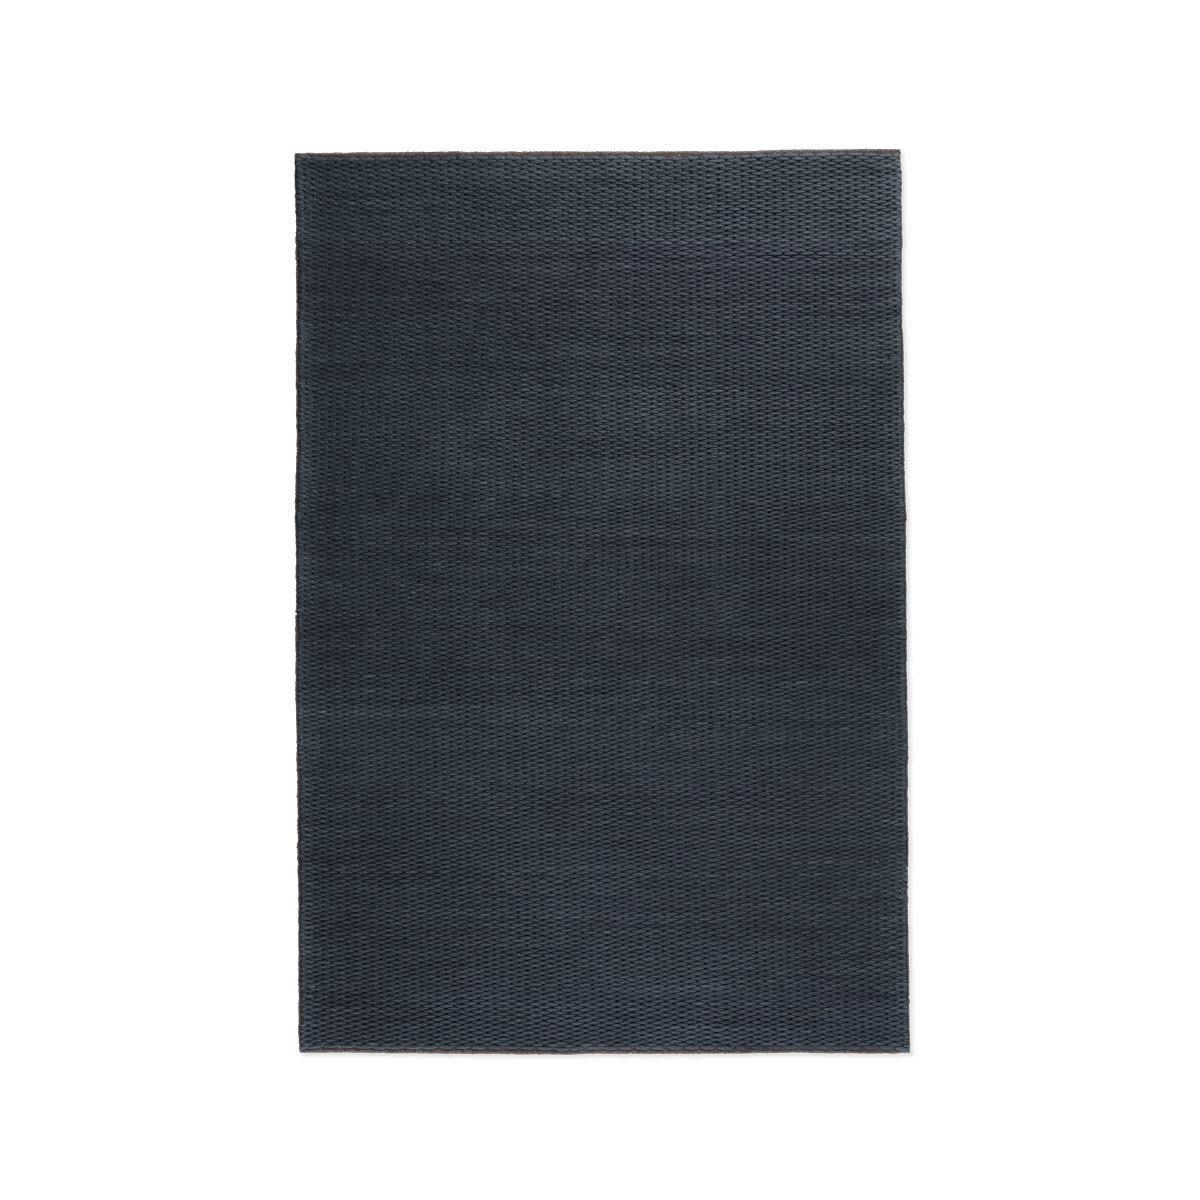 Product image of the chunky flatweave rug Dunes in the color Night. It has a thick, braided texture.